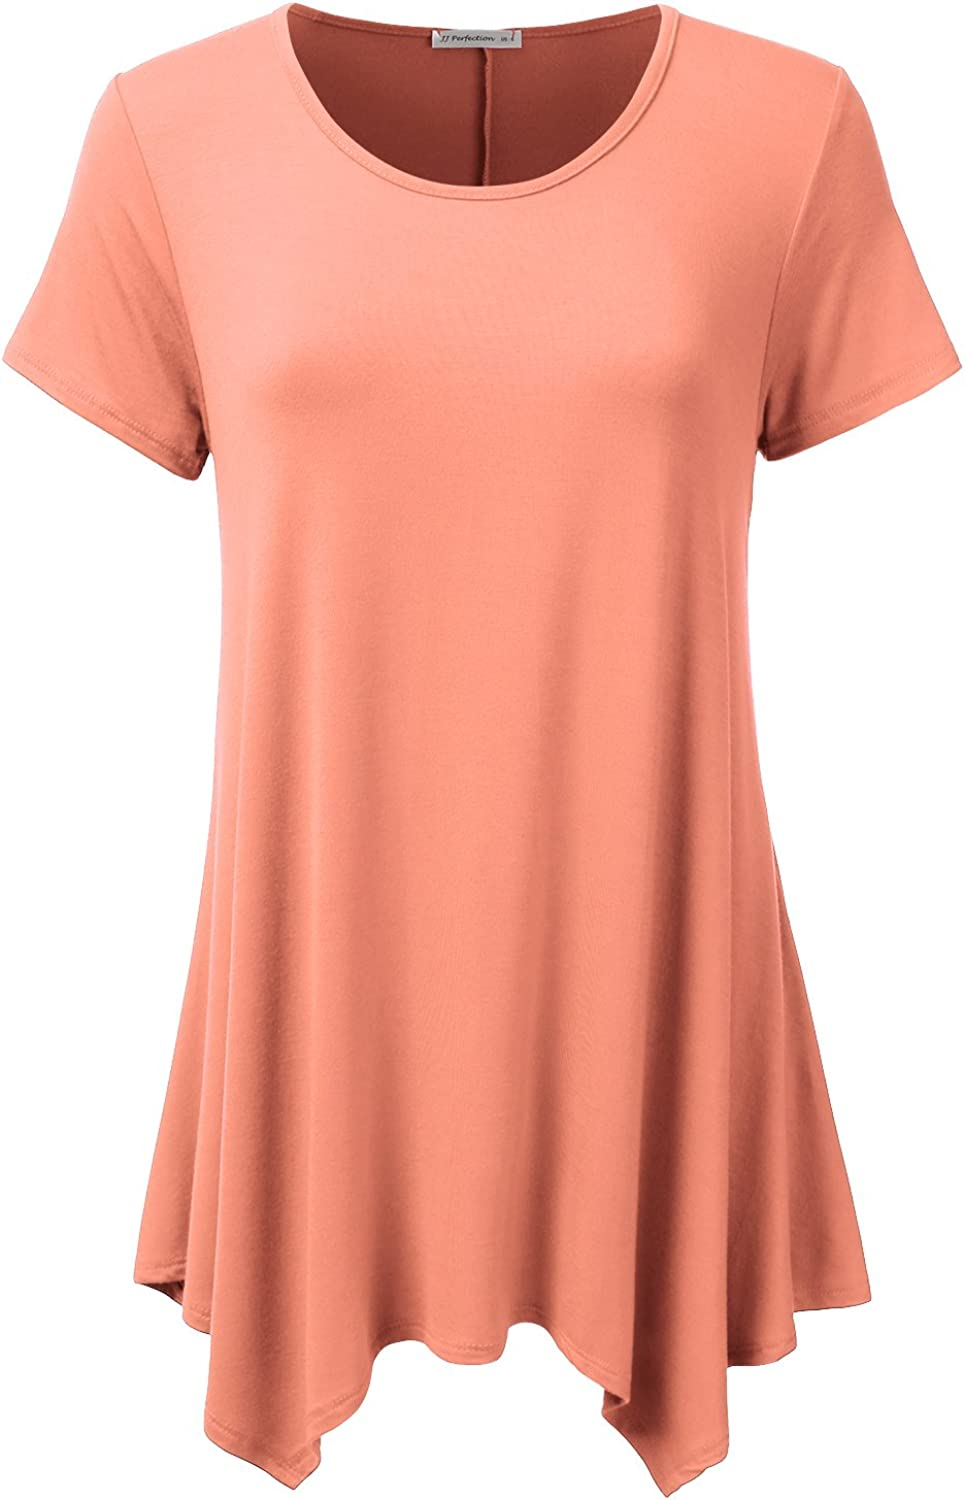 JJ Perfection Women's Short Sleeve Loose Fit Swing Tunic Top TShirt